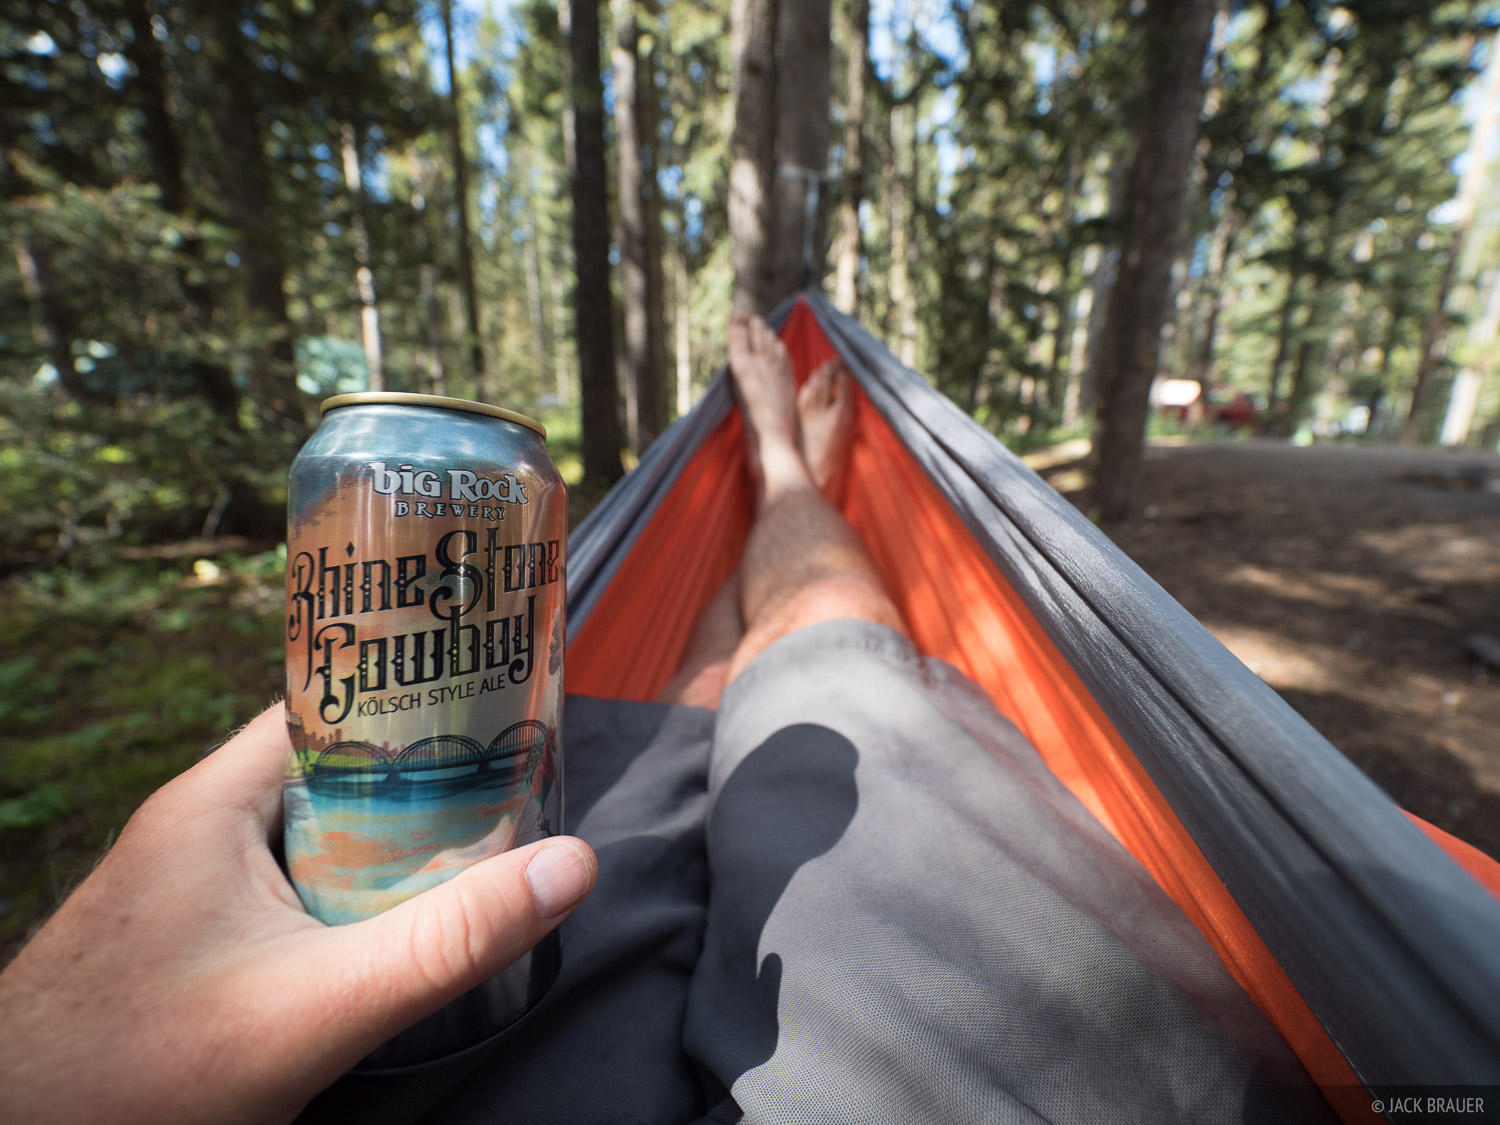 And here I am back down at the Lake Louise campground after hiking Mount Temple, with tired legs and a delicious cold beer! Have...